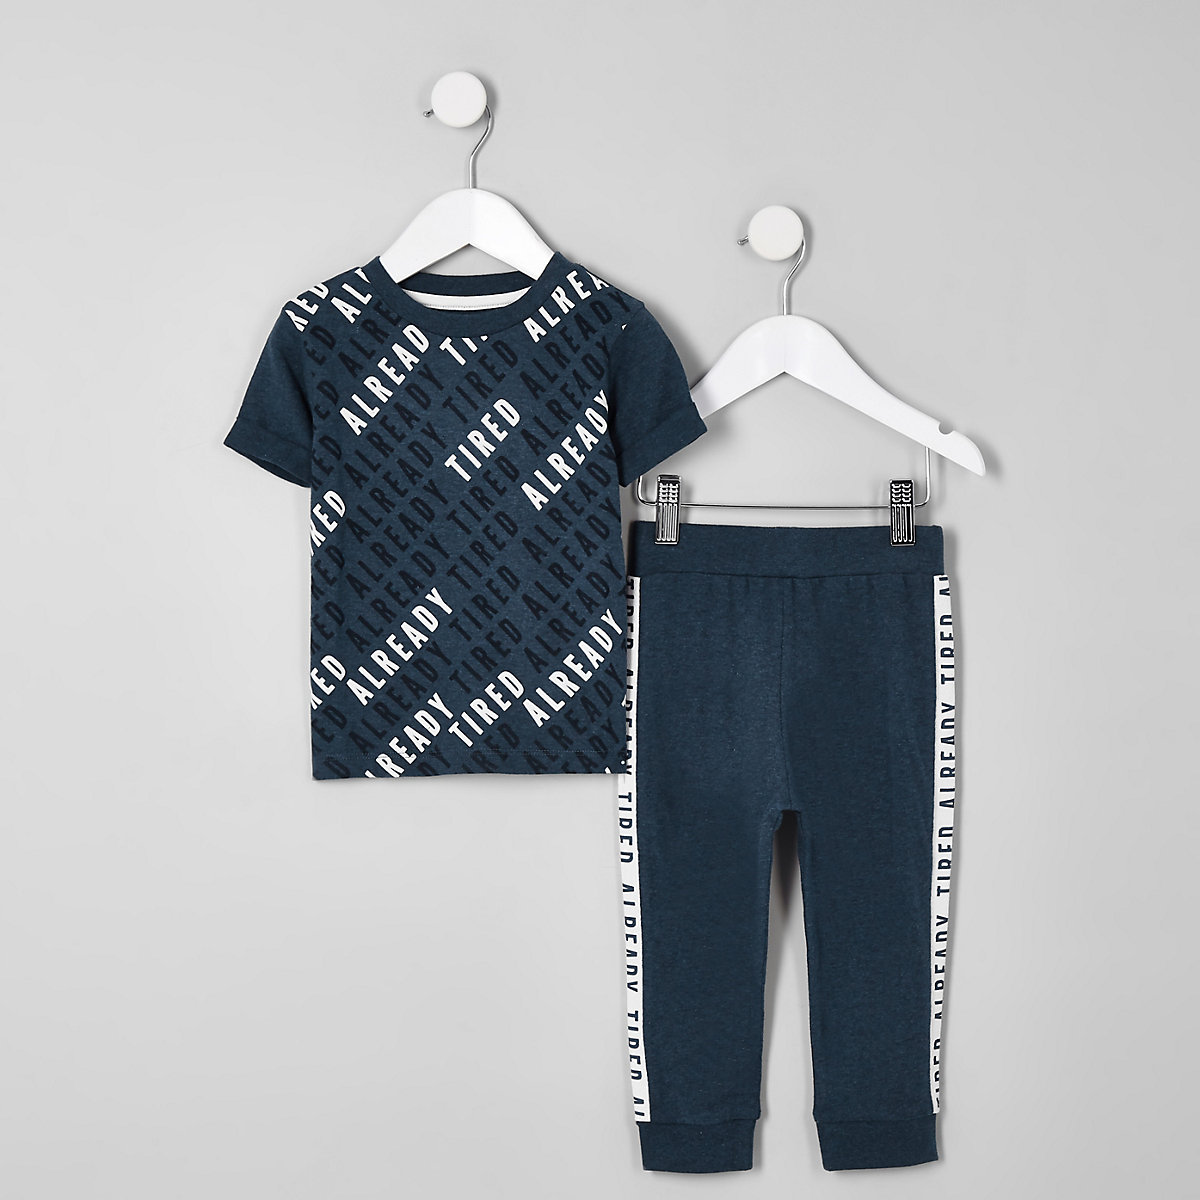 Mini boys navy 'Already tired' pajama set